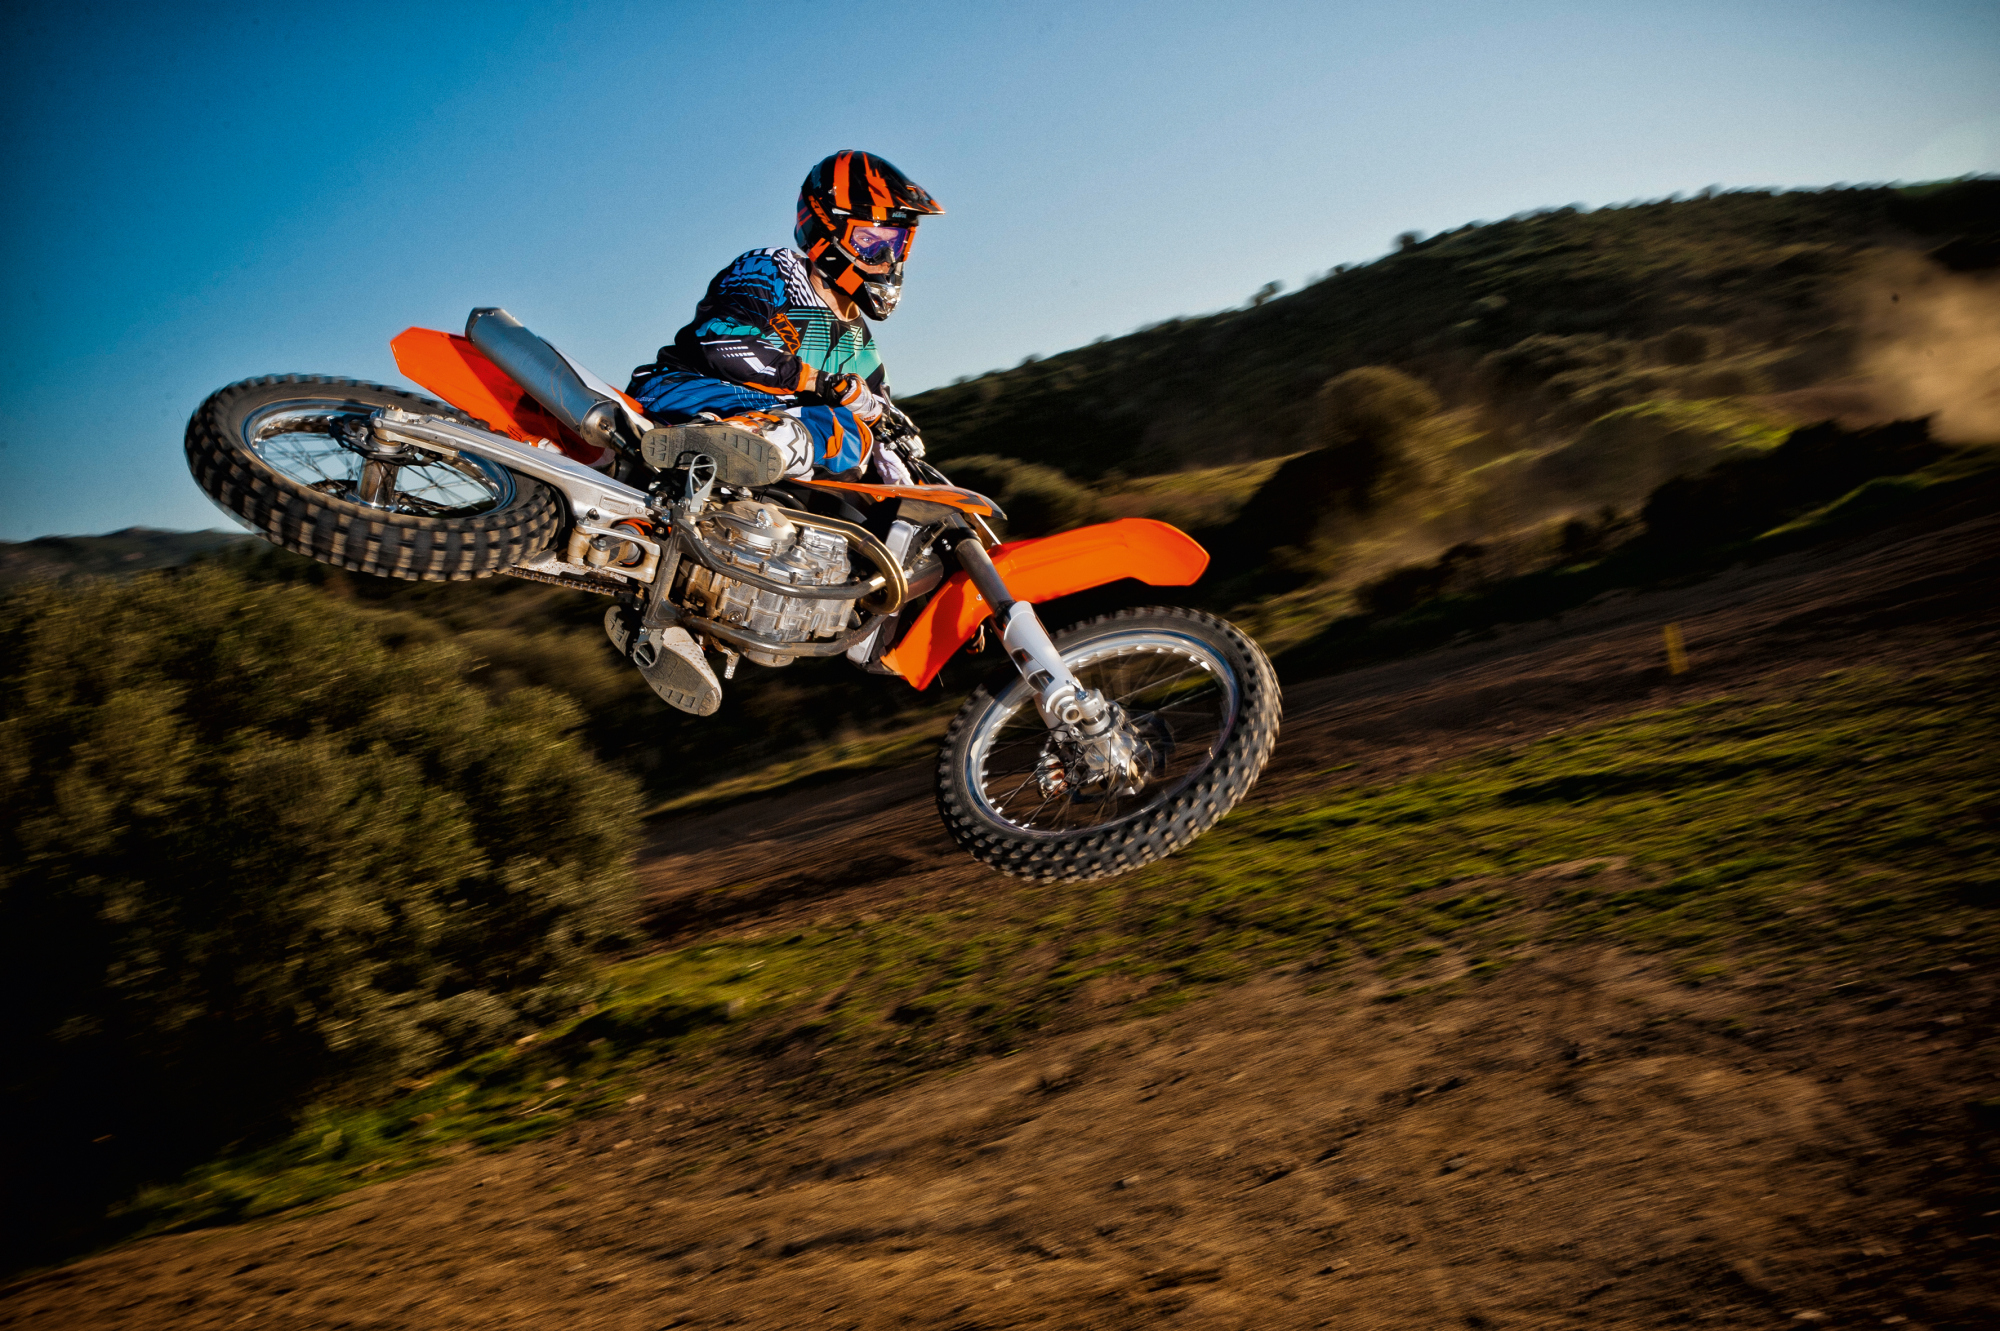 KTM 450 sx Motocross Wallpaper Desktop Wallpaper with 2000x1331 2000x1331